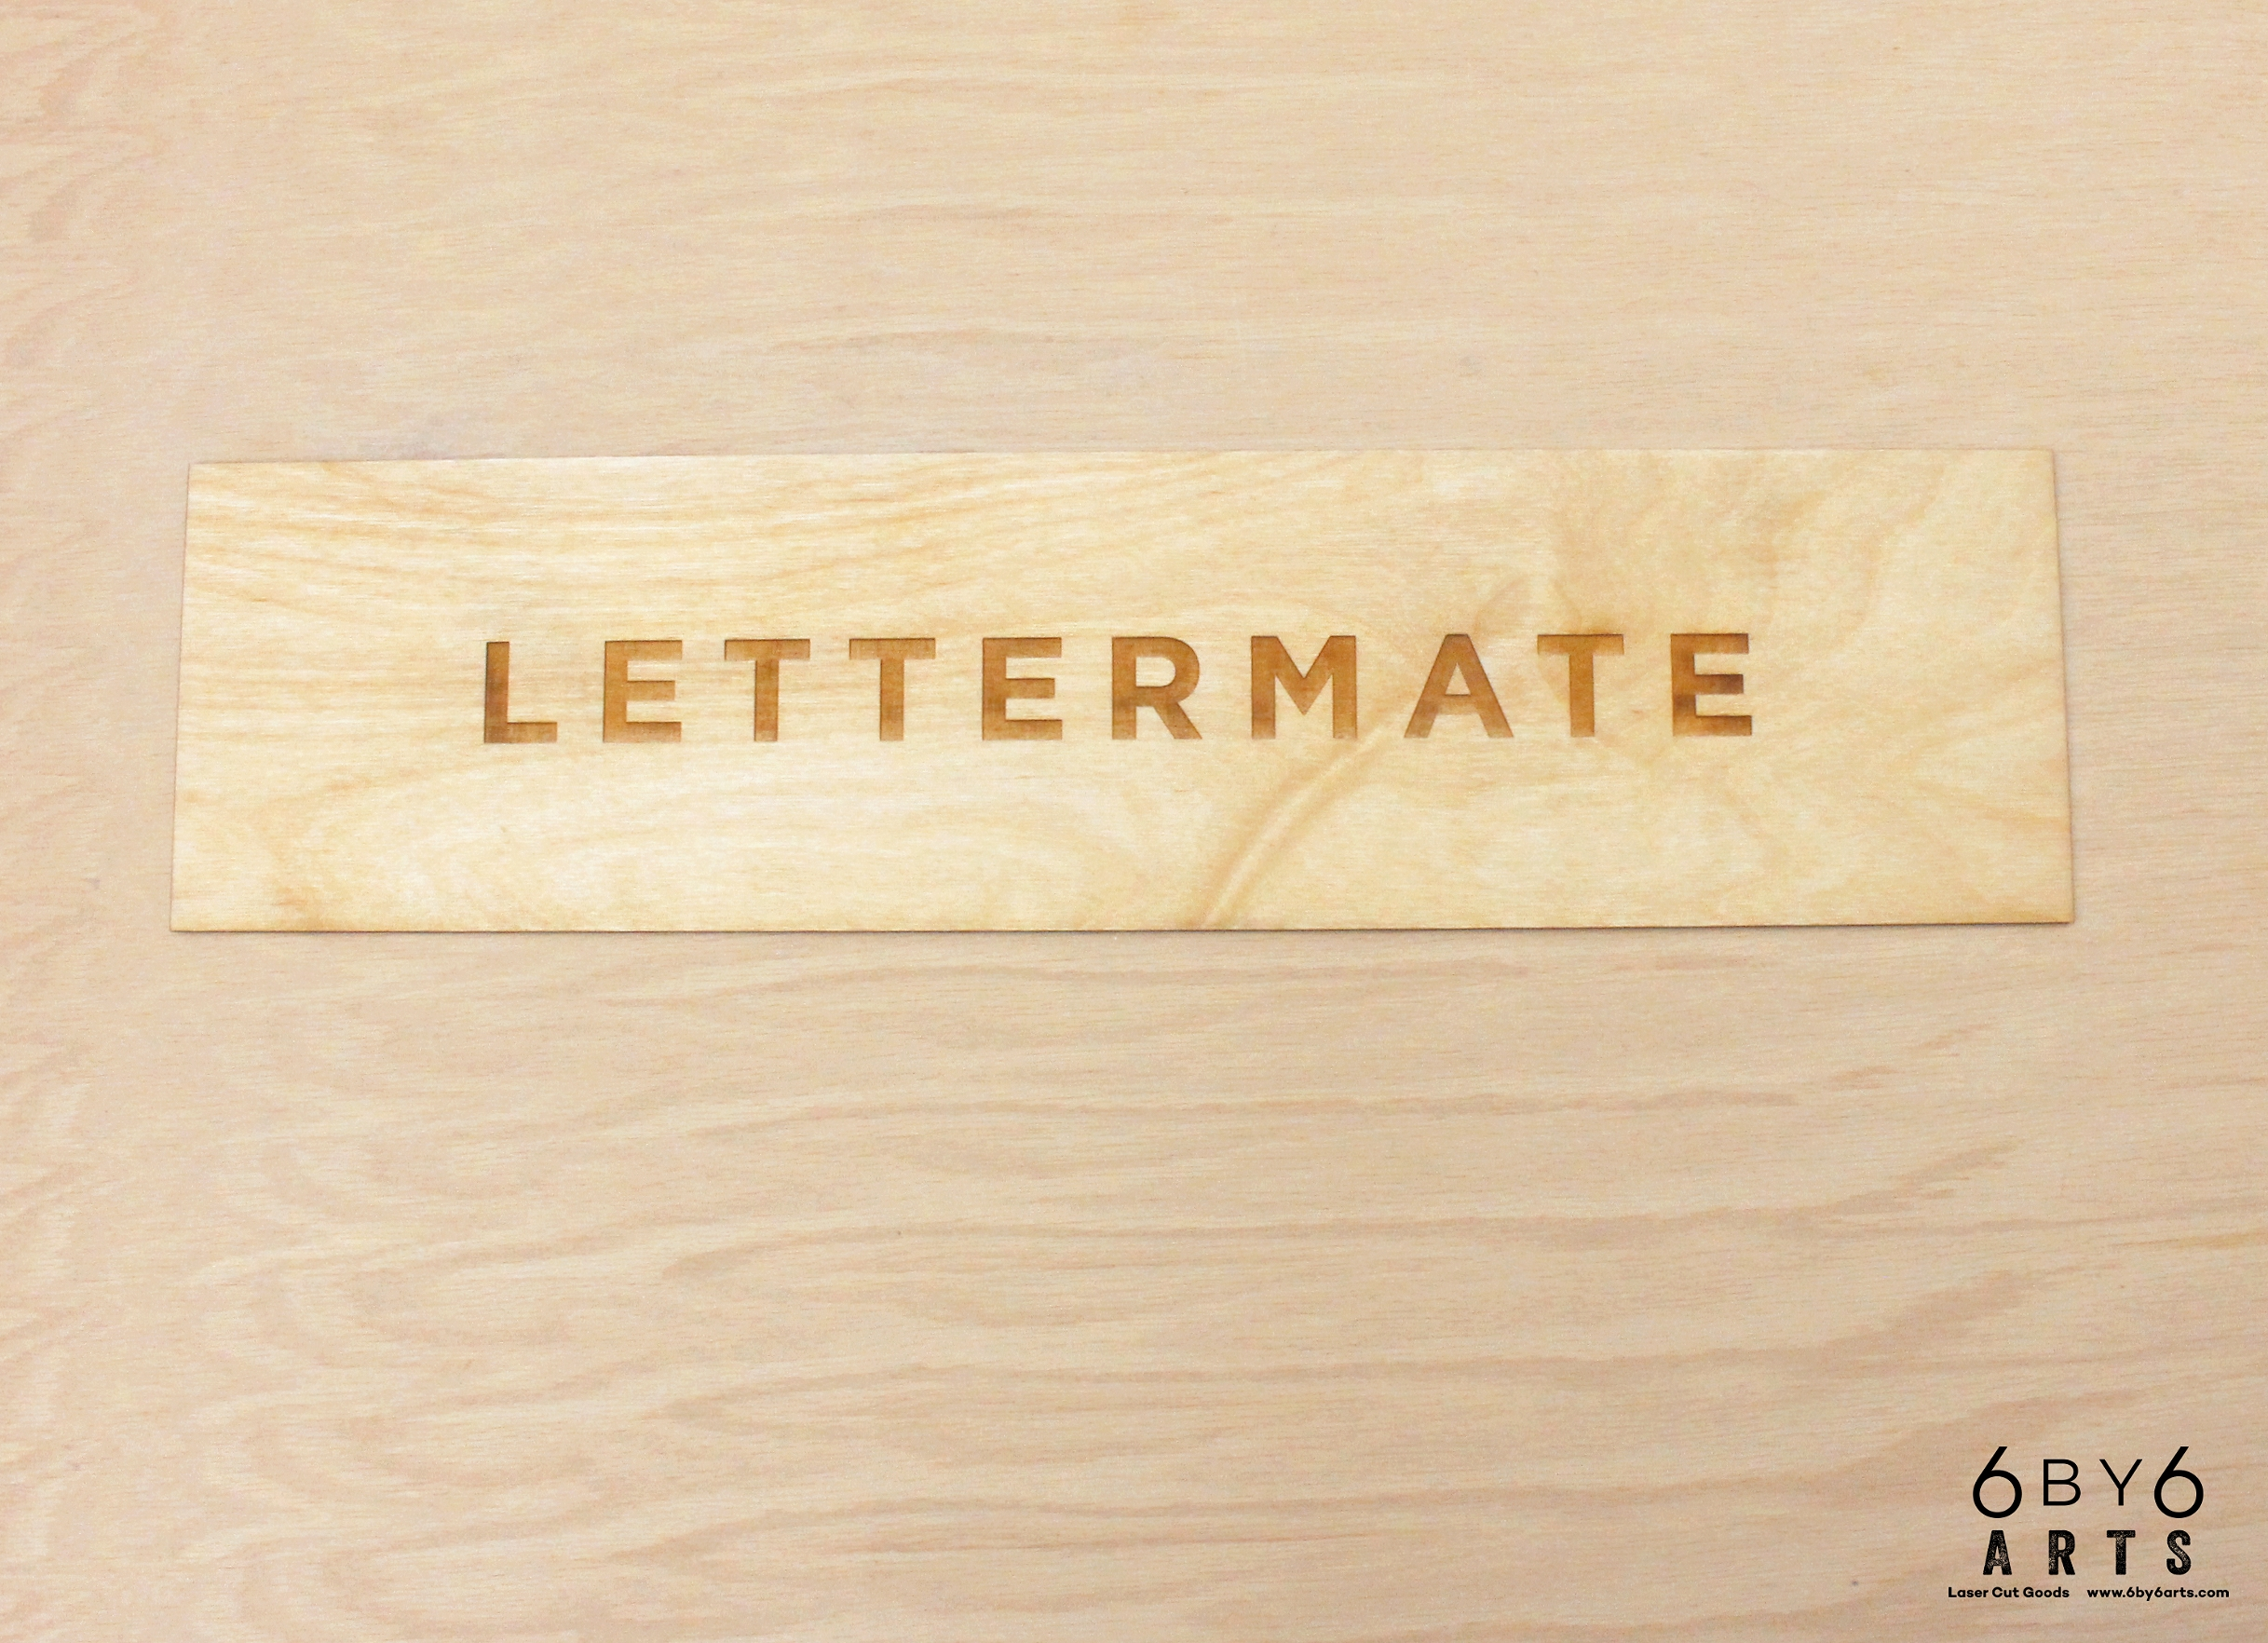 The Original Lettermate The Lettermate Laser Cut And Engraved Image Gallery — 6 By 6 Arts